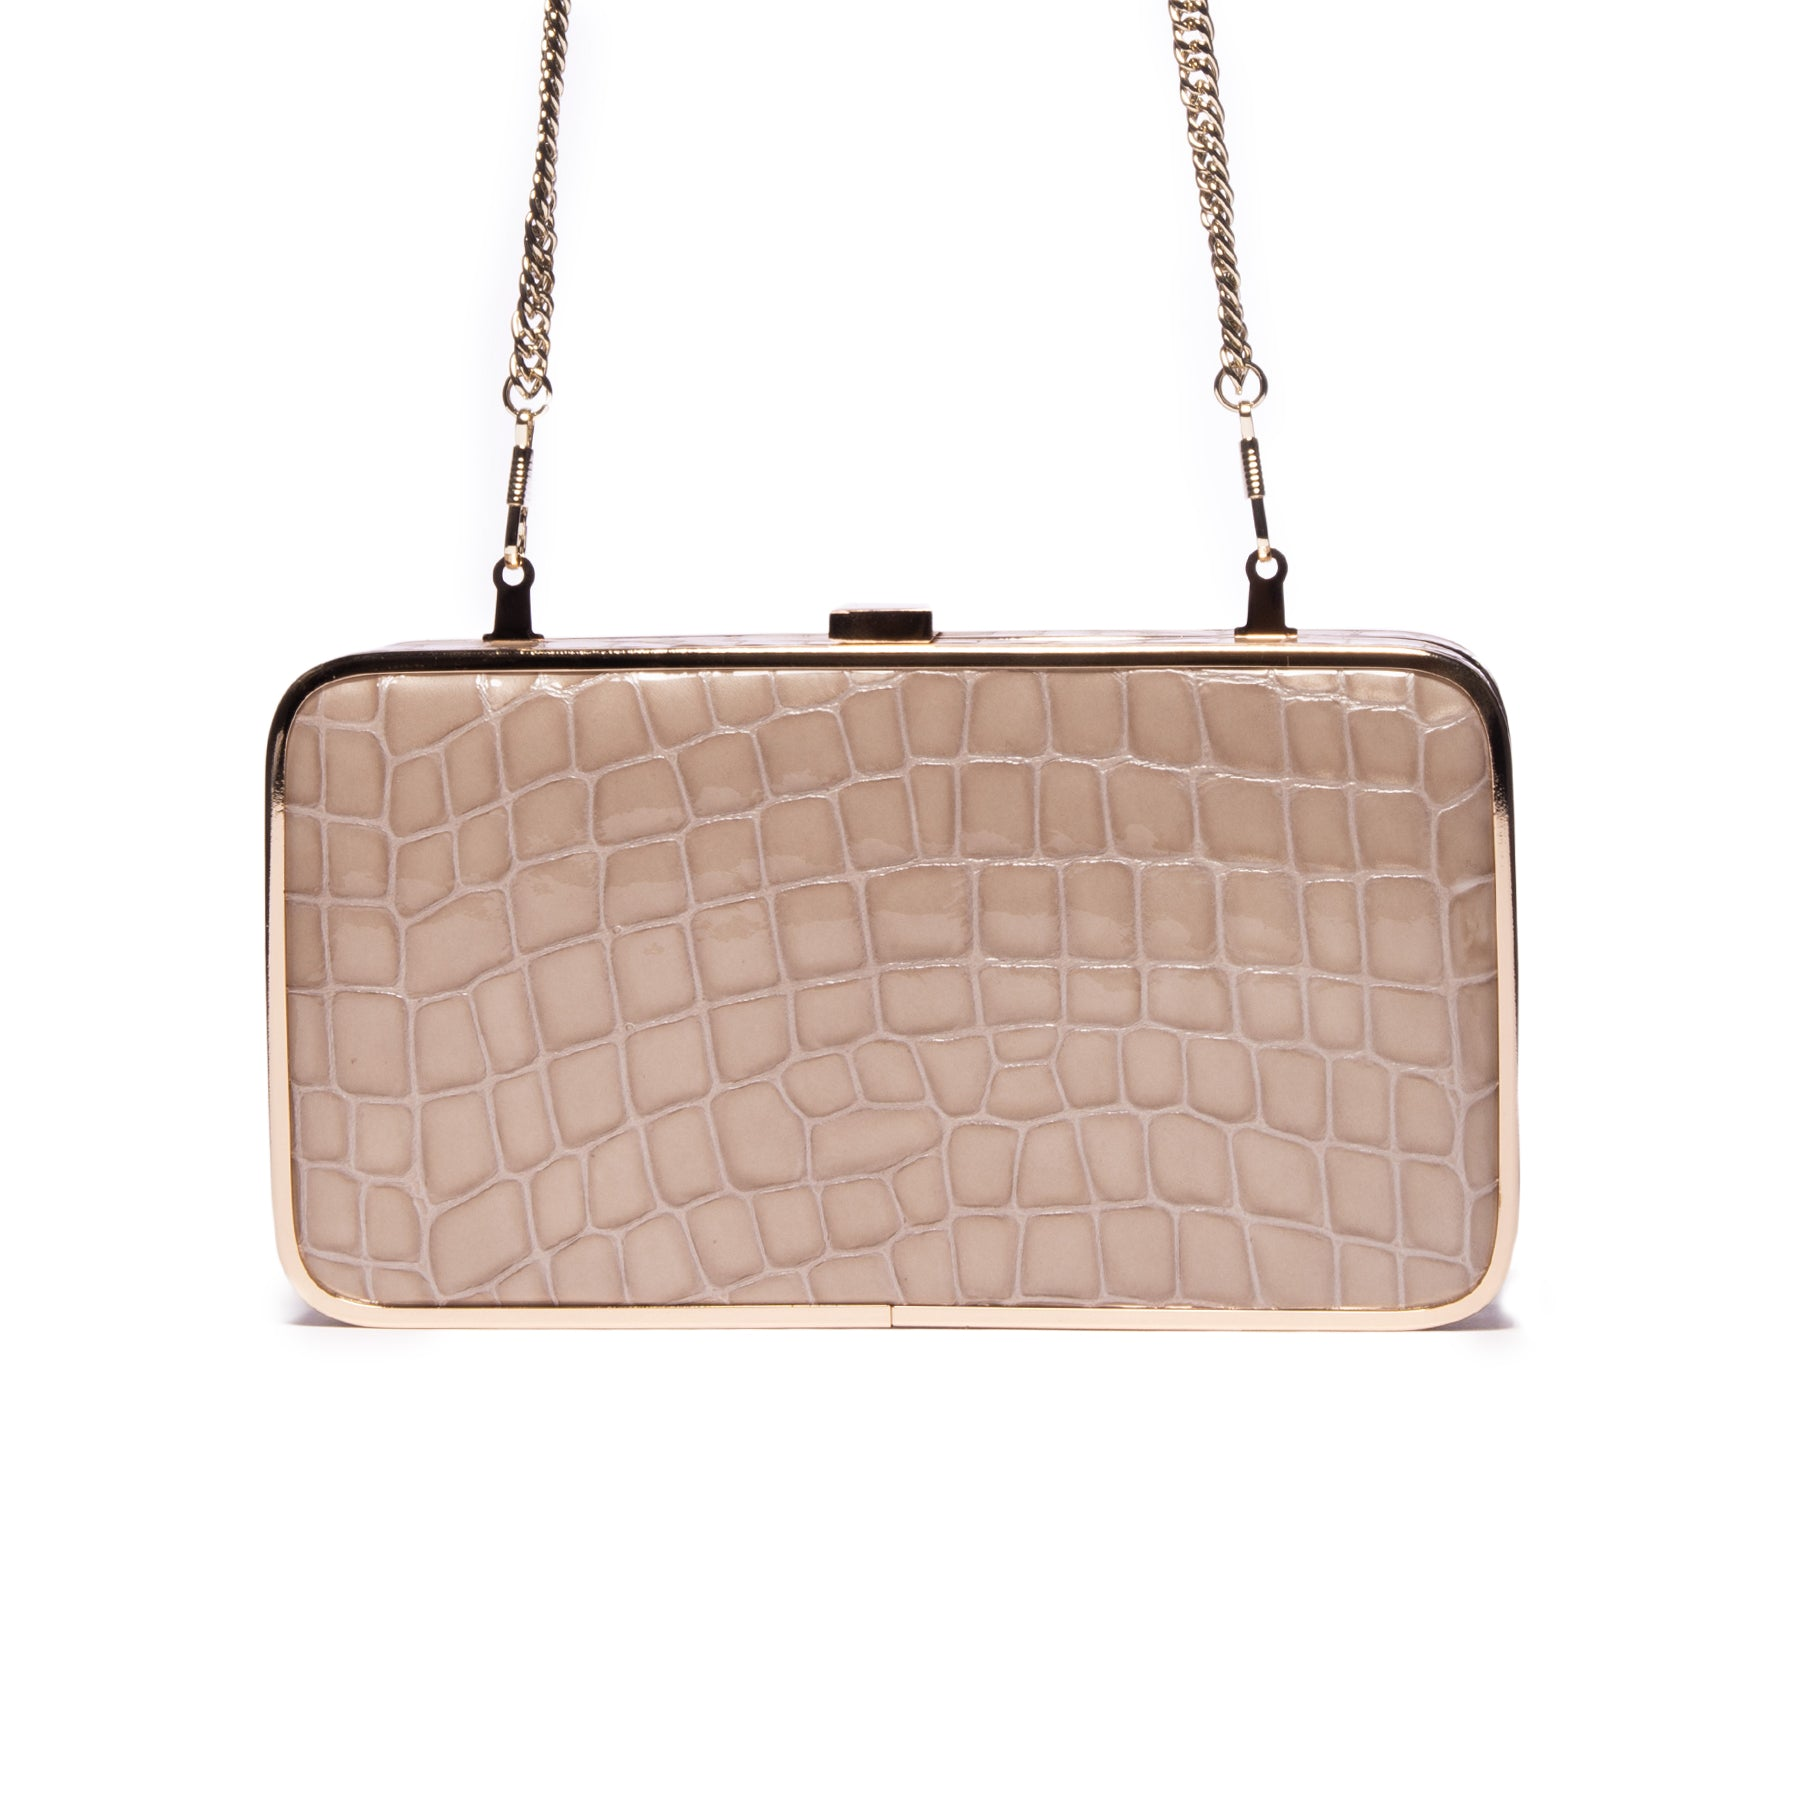 Thais Grey Croco Leather Clutch